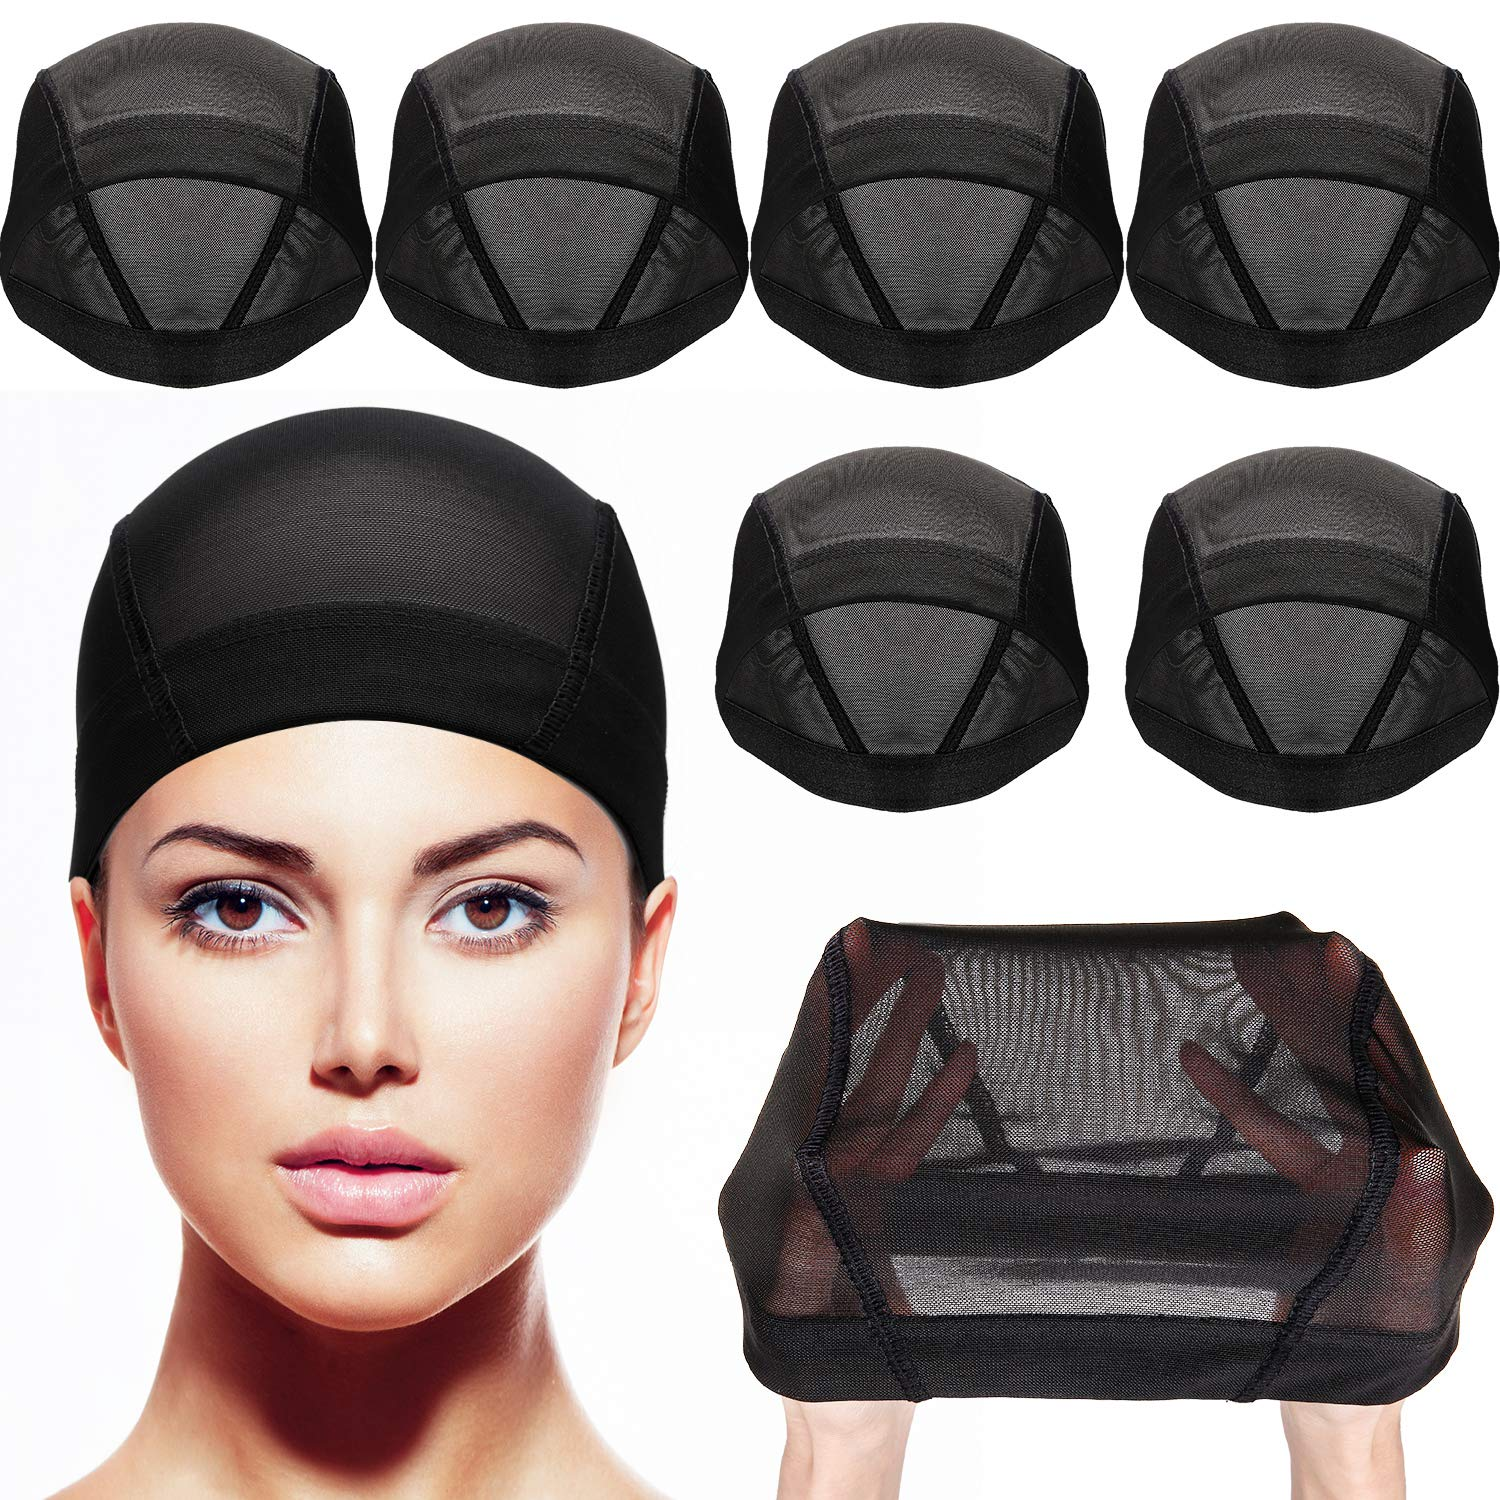 Tatuo 8 Pack Dome Caps Stretchable Wigs Cap Spandex Dome Style Wig Caps For Men Women (Black Mesh Wig Caps) by Tatuo